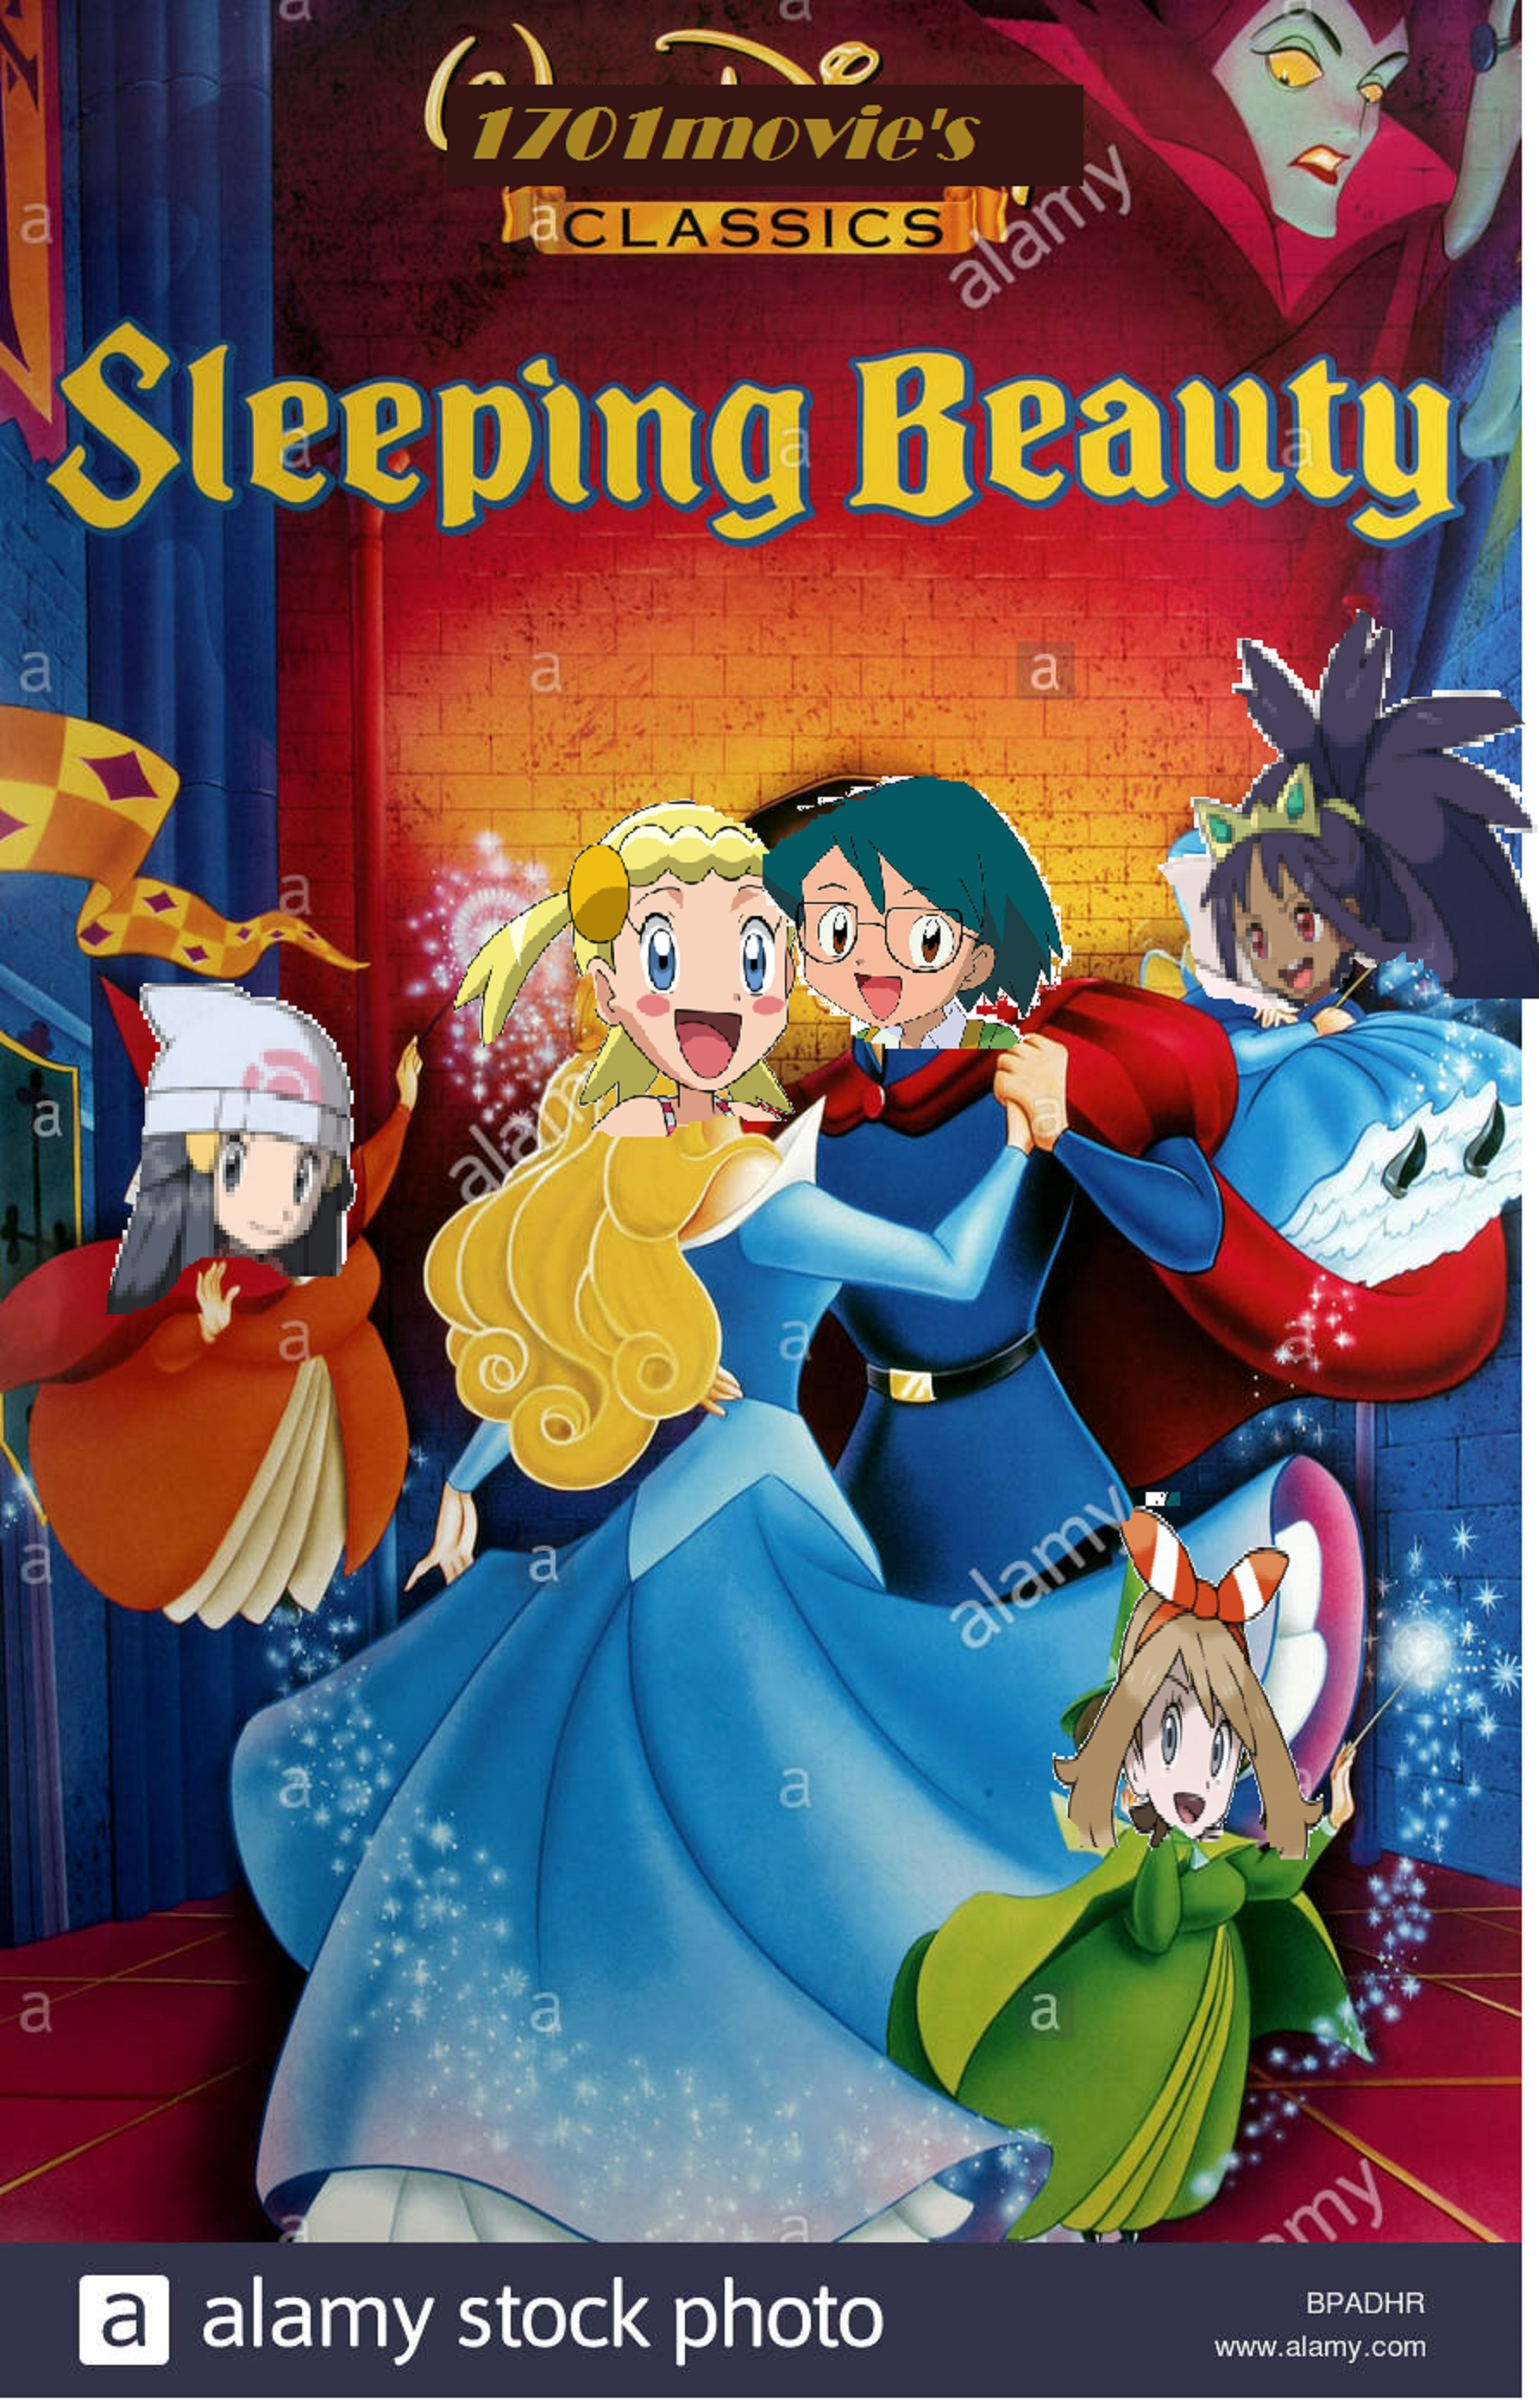 Sleeping Beauty (1701Movies Human Style)